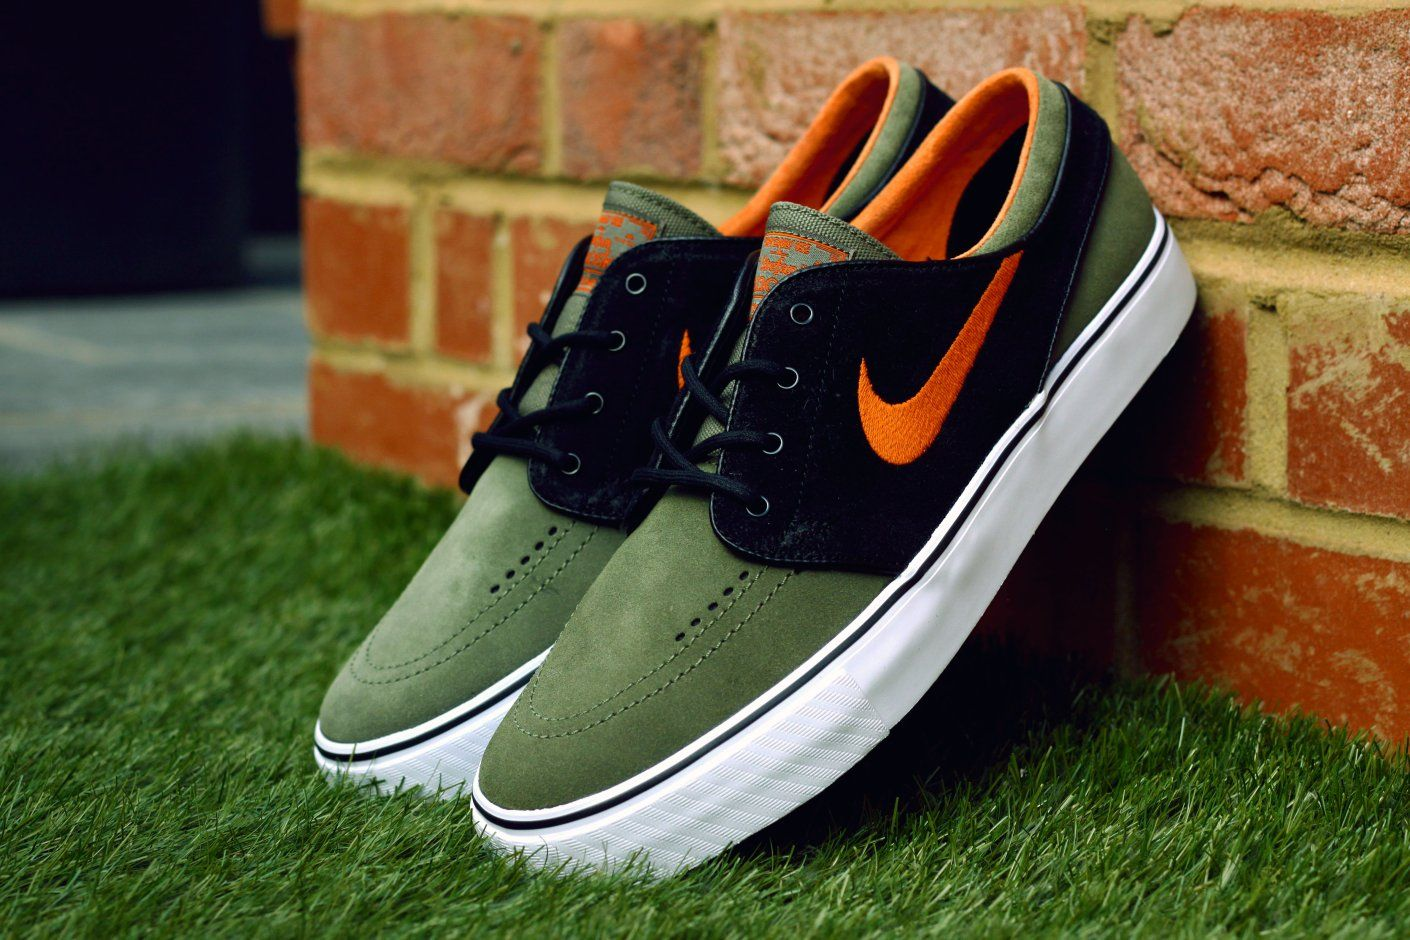 Image of Nike SB Zoom Stefan Janoski Medium Olive Urban Orange-Black 4c6af57bf